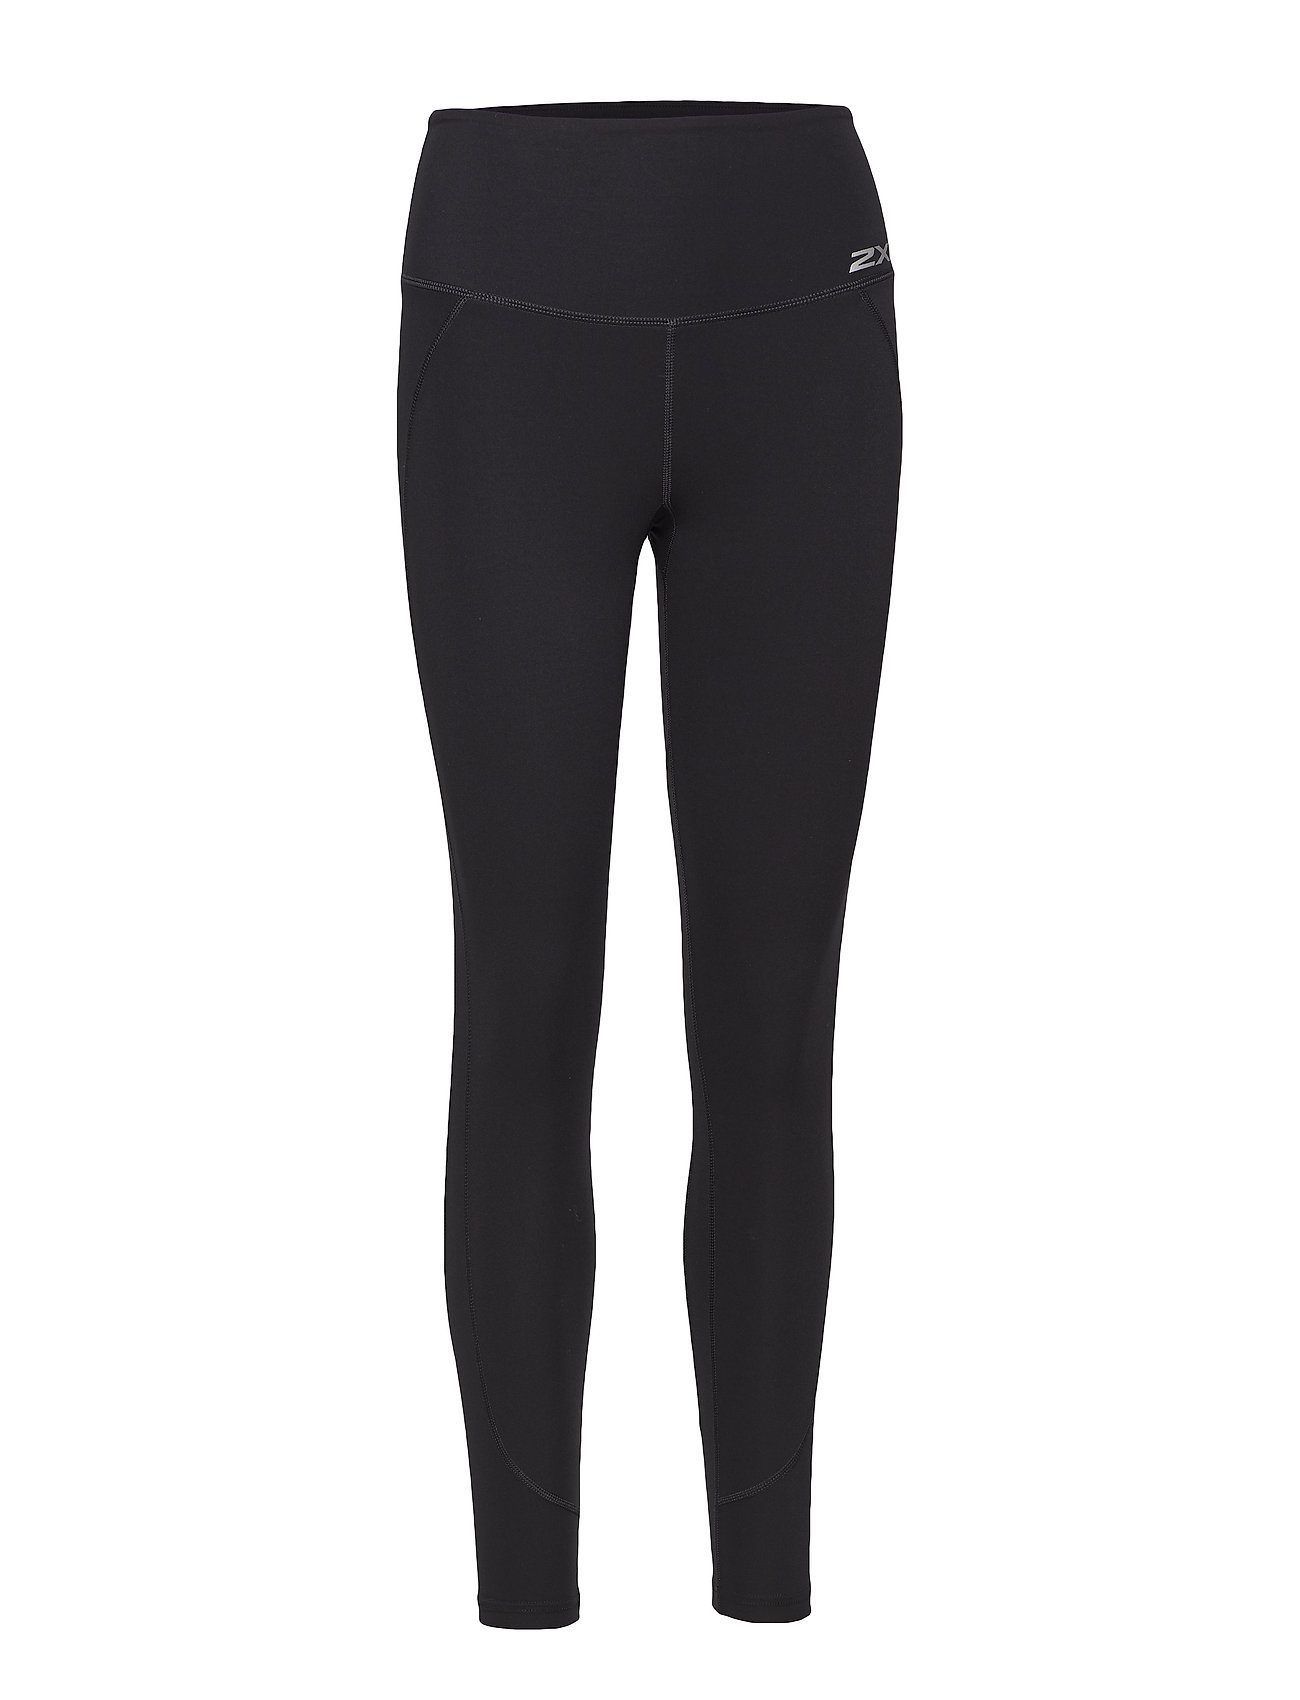 2XU Fitness Hi-Rise Comp Tights - BLACK/BLACK